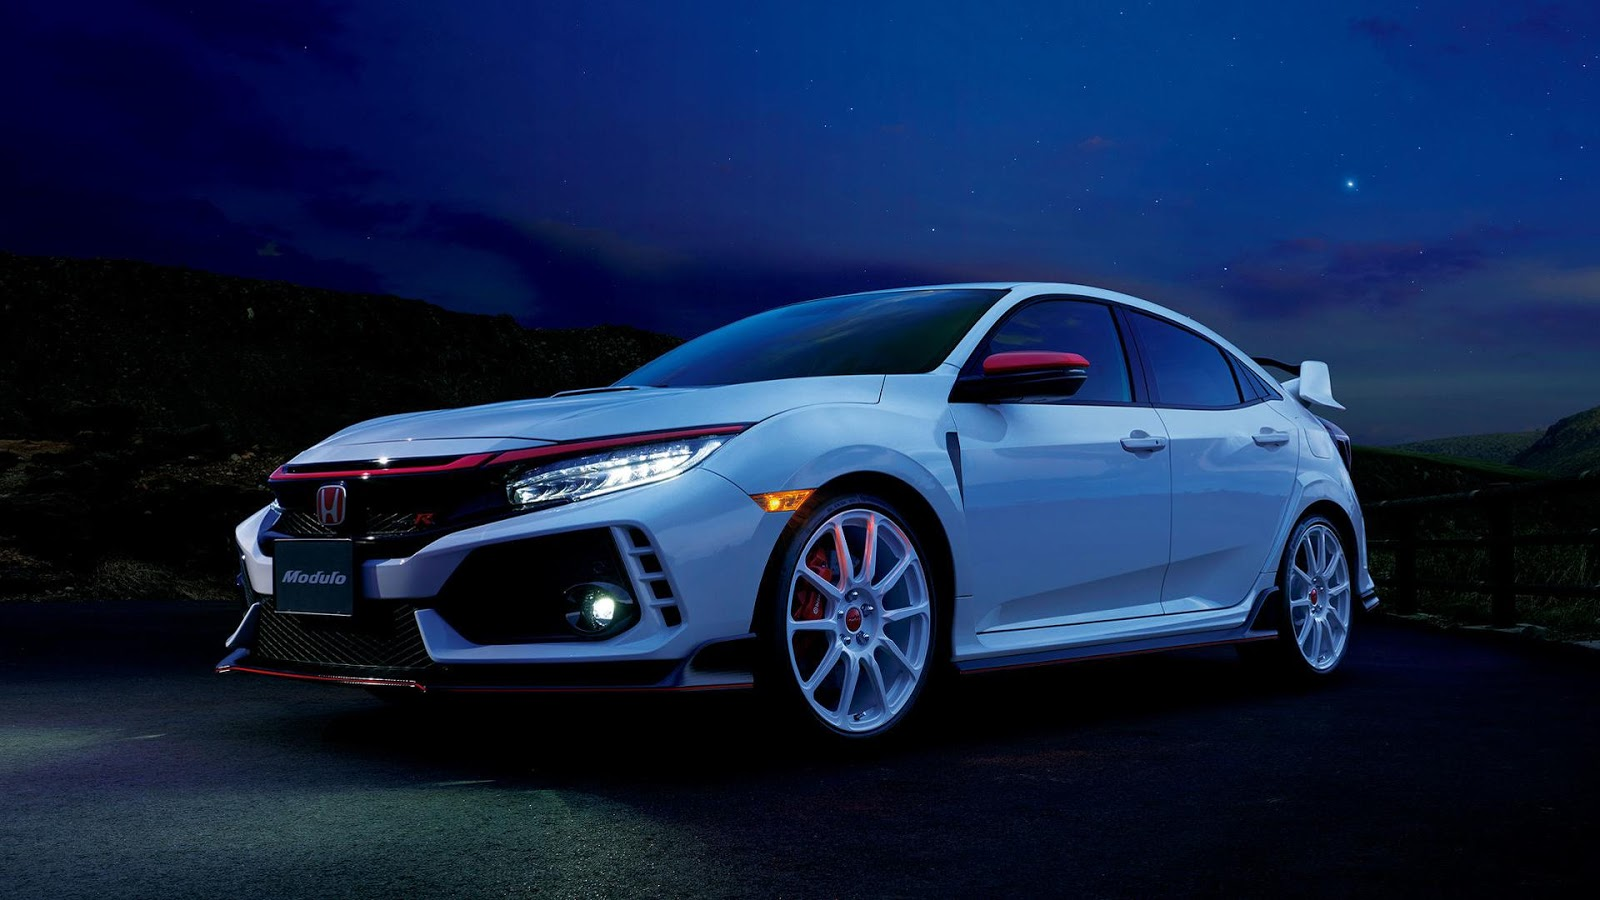 Jdm honda civic type r accessories make it even wilder for Buy honda civic type r